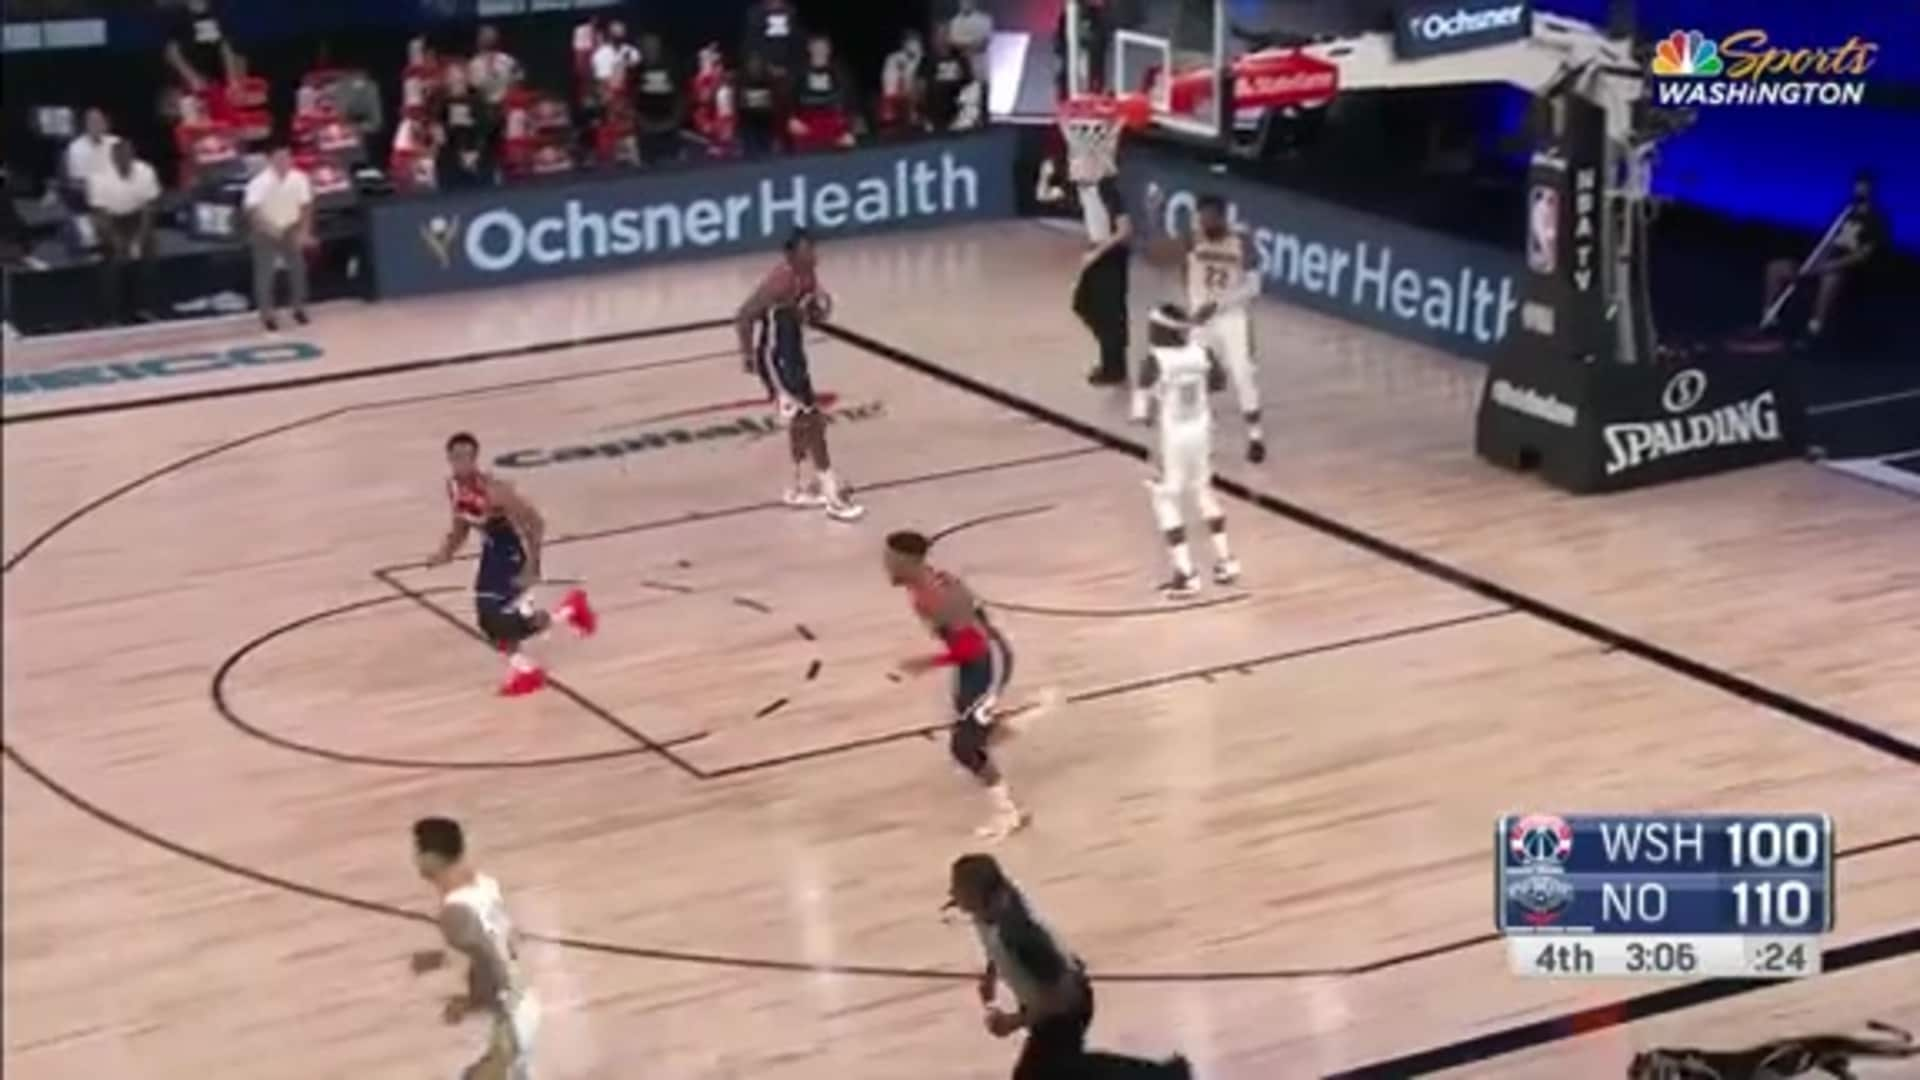 Highlights: Troy Brown Jr. vs. Pelicans - 08/07/20